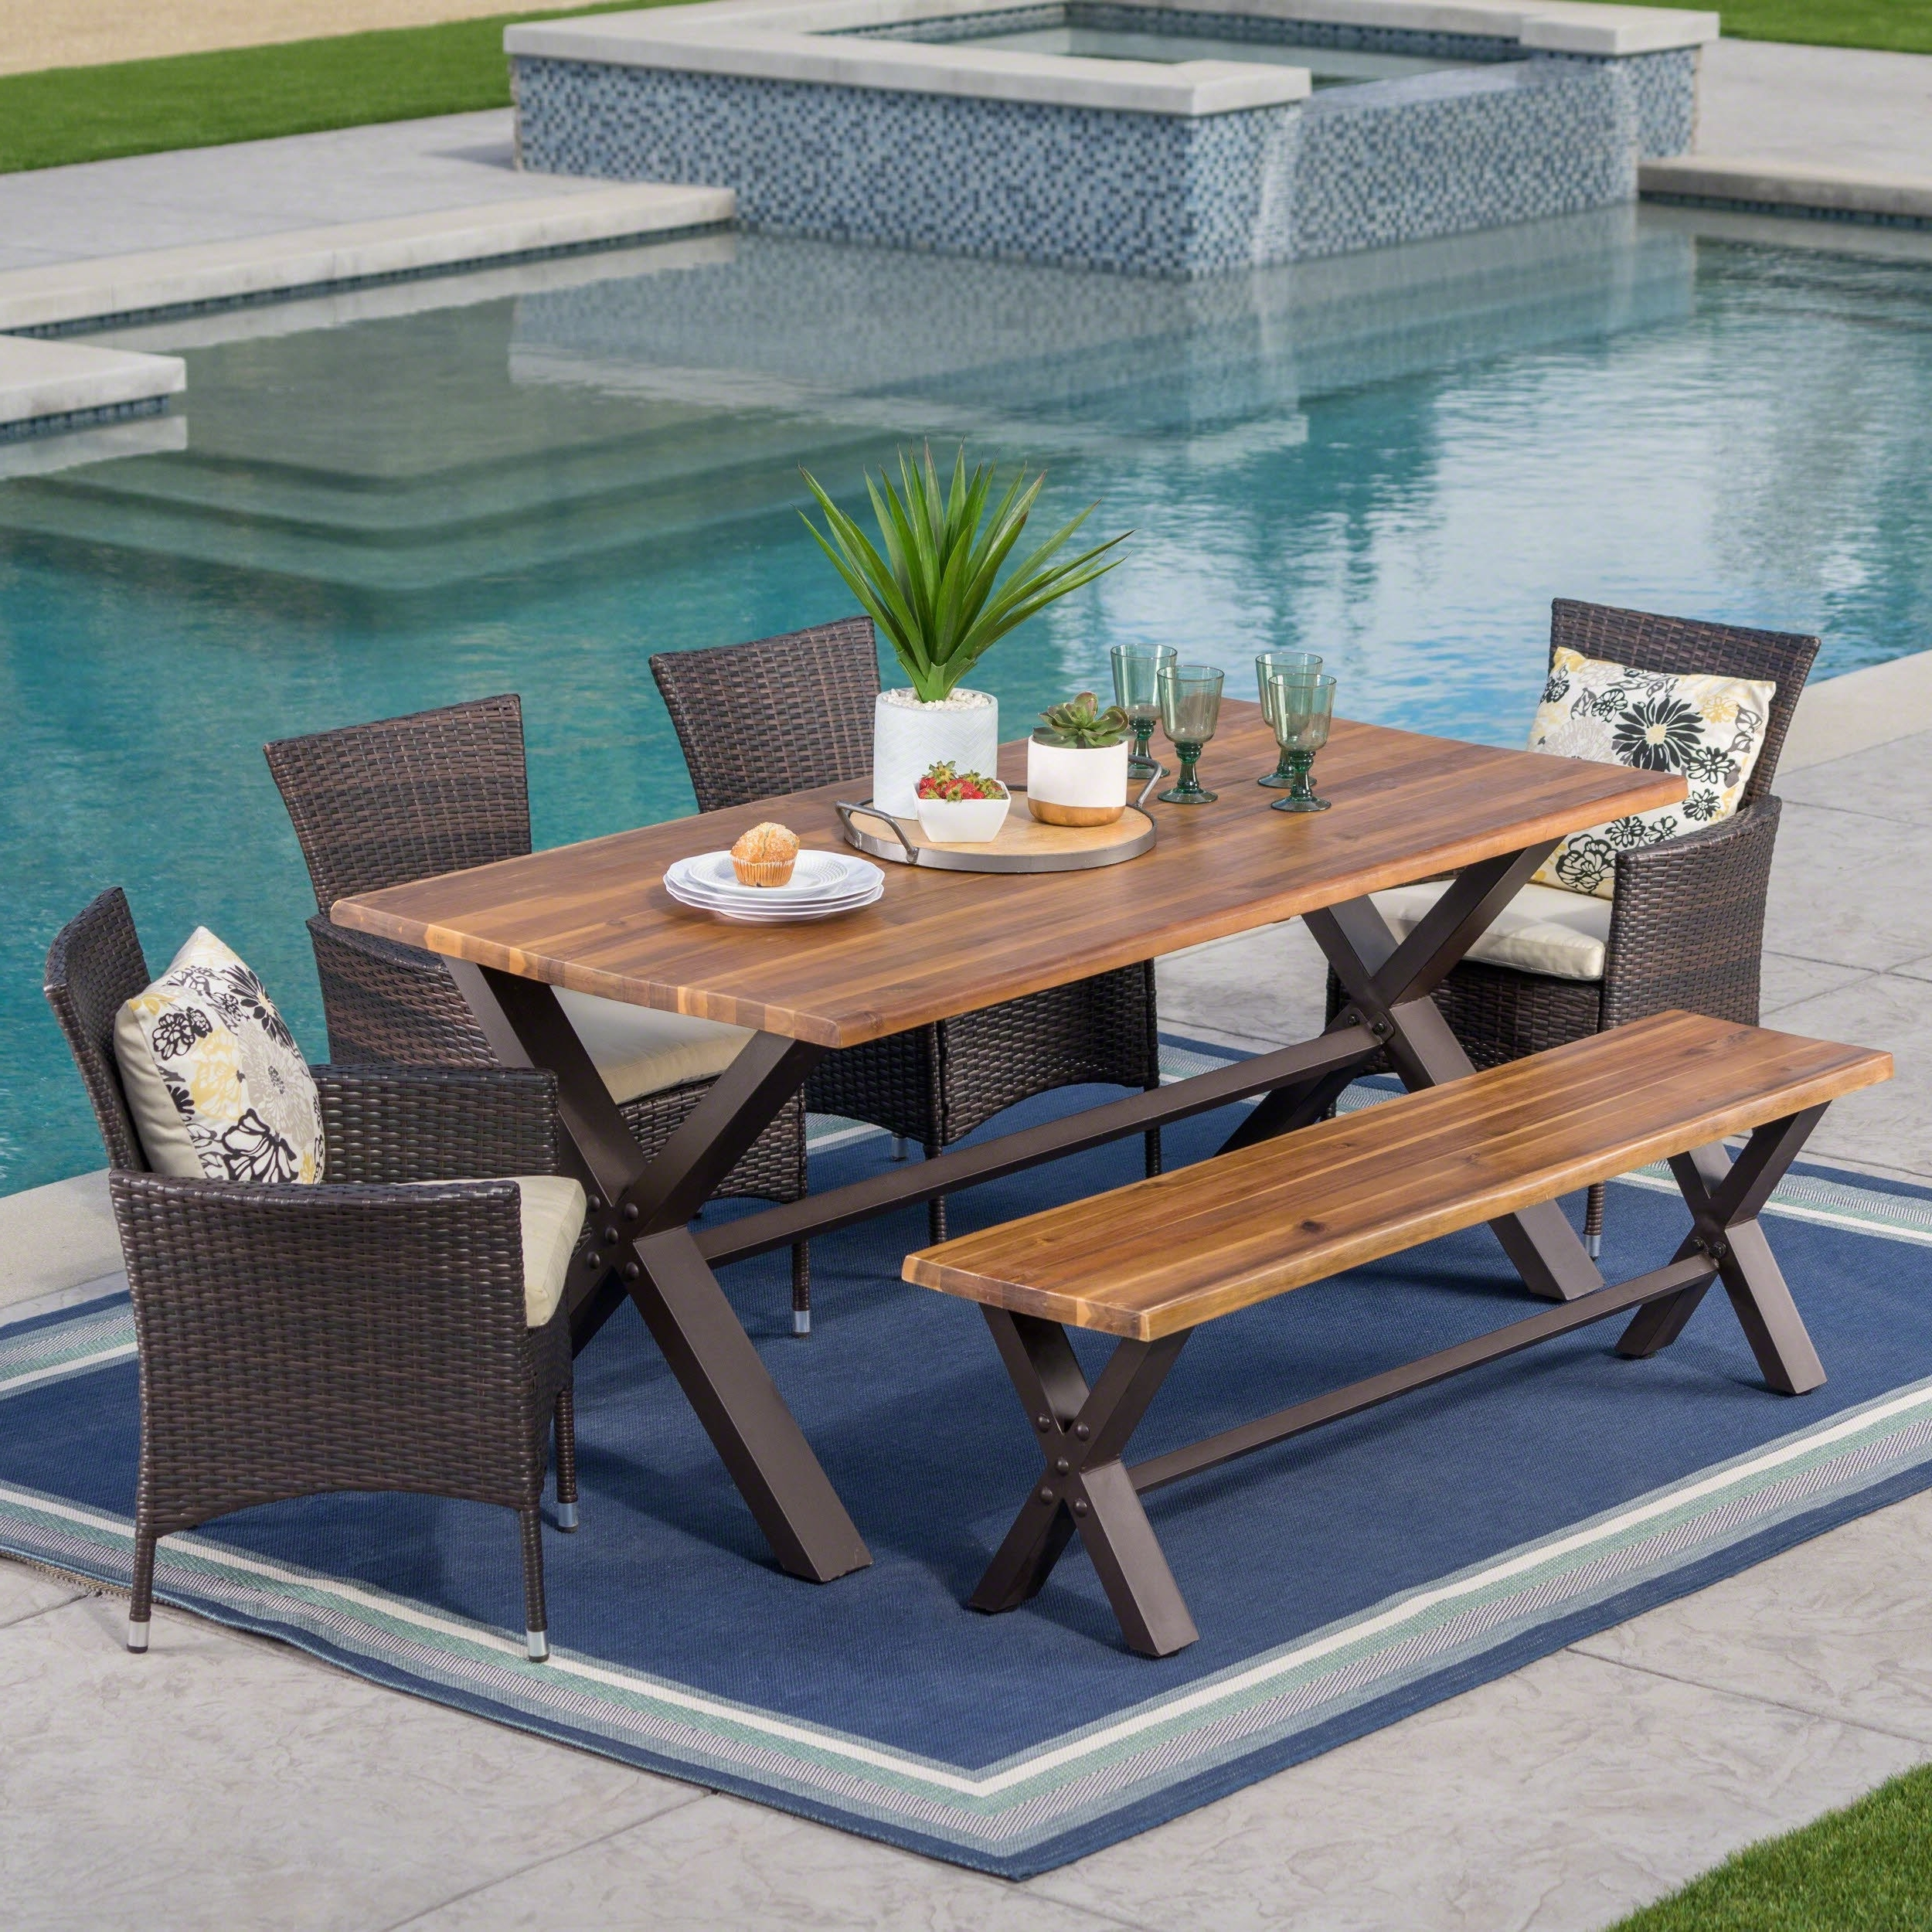 Buy Outdoor Dining Sets Online At Overstock (View 25 of 25)